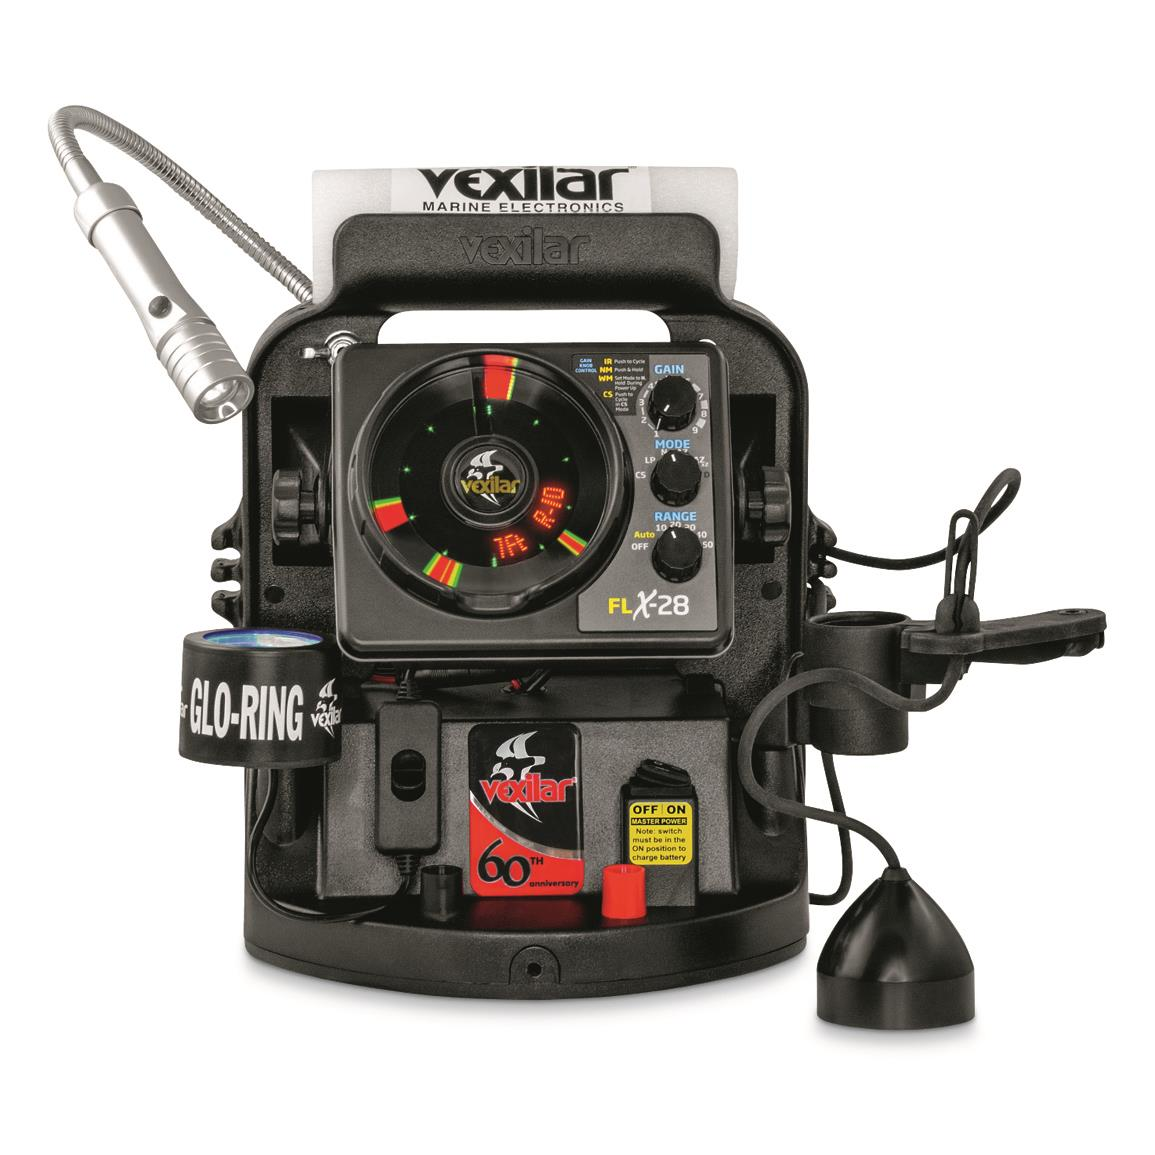 Vexilar FLX-28 Limited Edition 60th Anniversary Ultra Pack Fish Finder